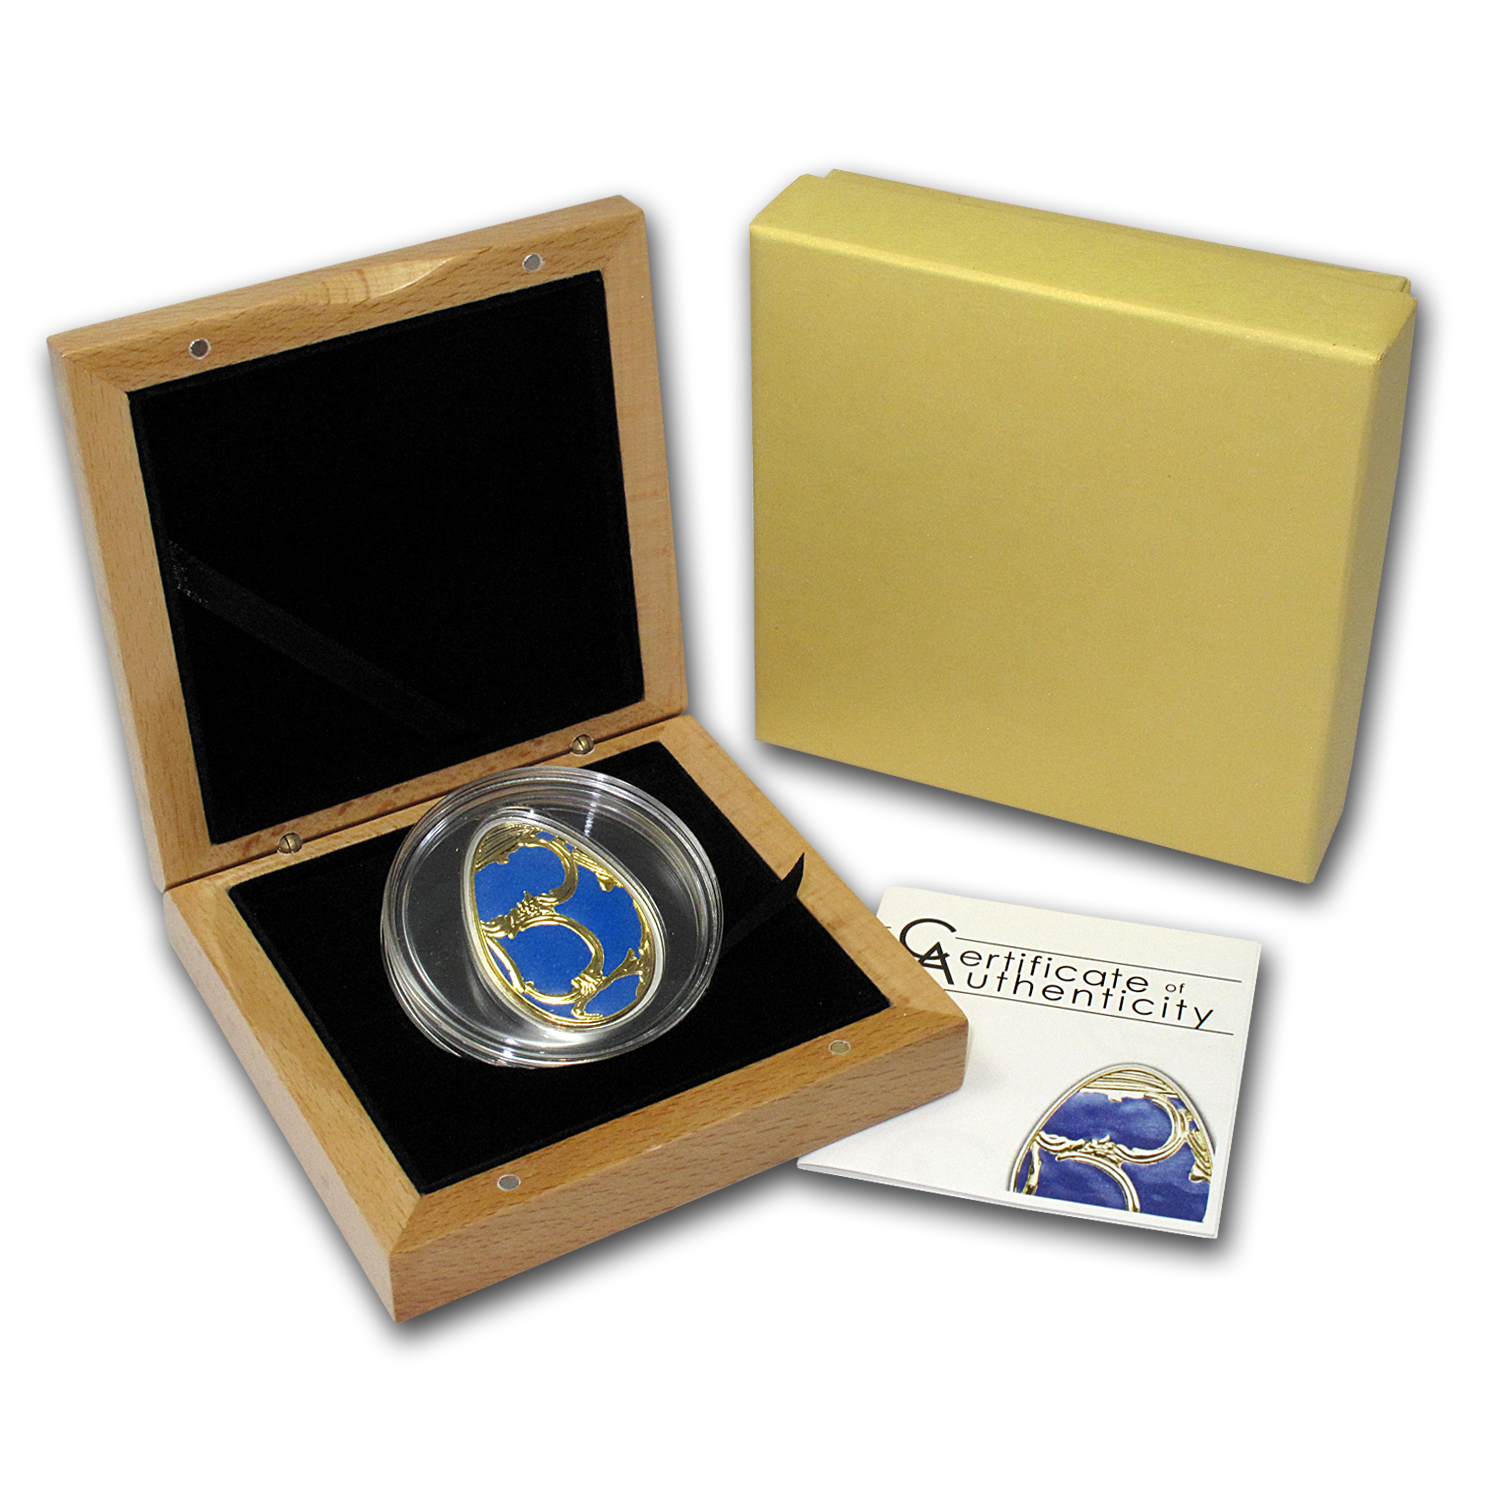 2010 Cook Islands Proof Silver Imperial Egg in Cloisonné Blue